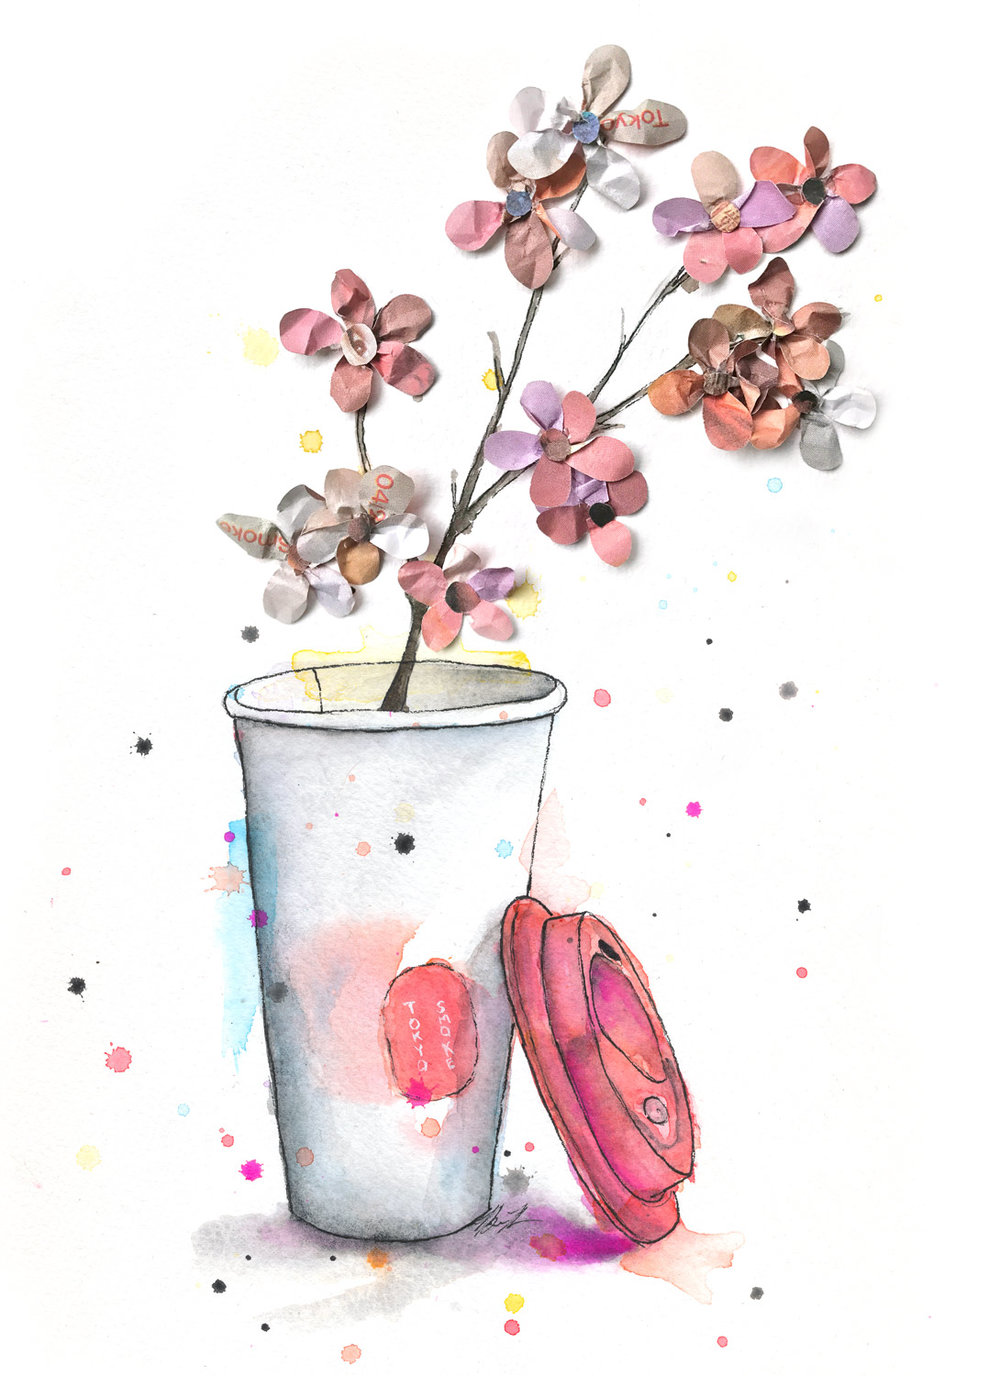 Benjamin-Edward-Tokyo-Smoke-Coffee-Sakura-Cherry-Blossoms-watercolour-illustration.jpg